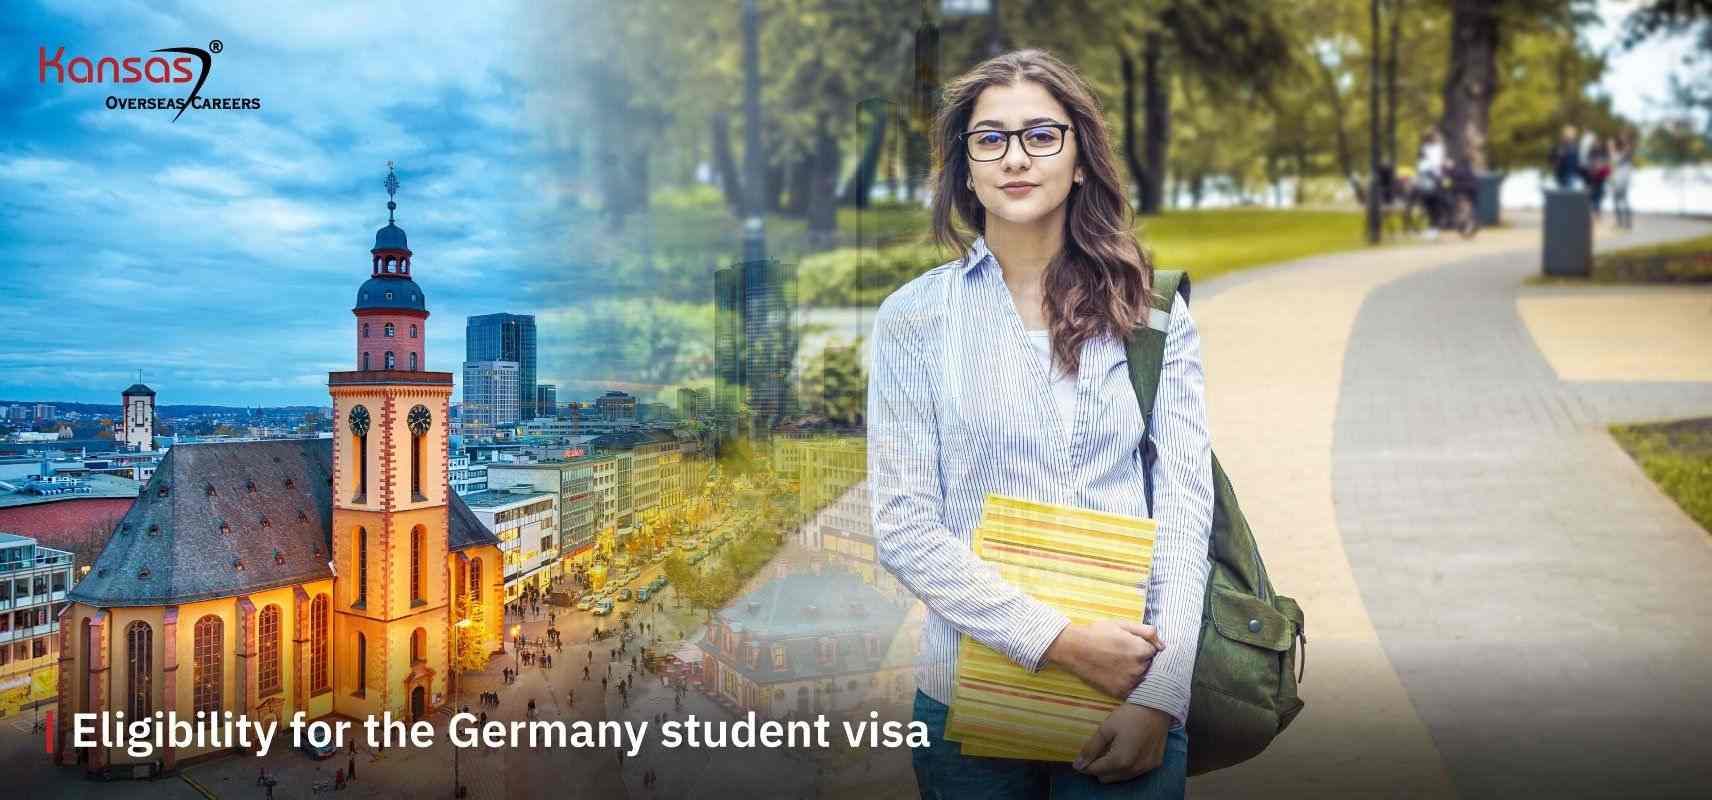 Eligibility-for-the-germany-student-visa